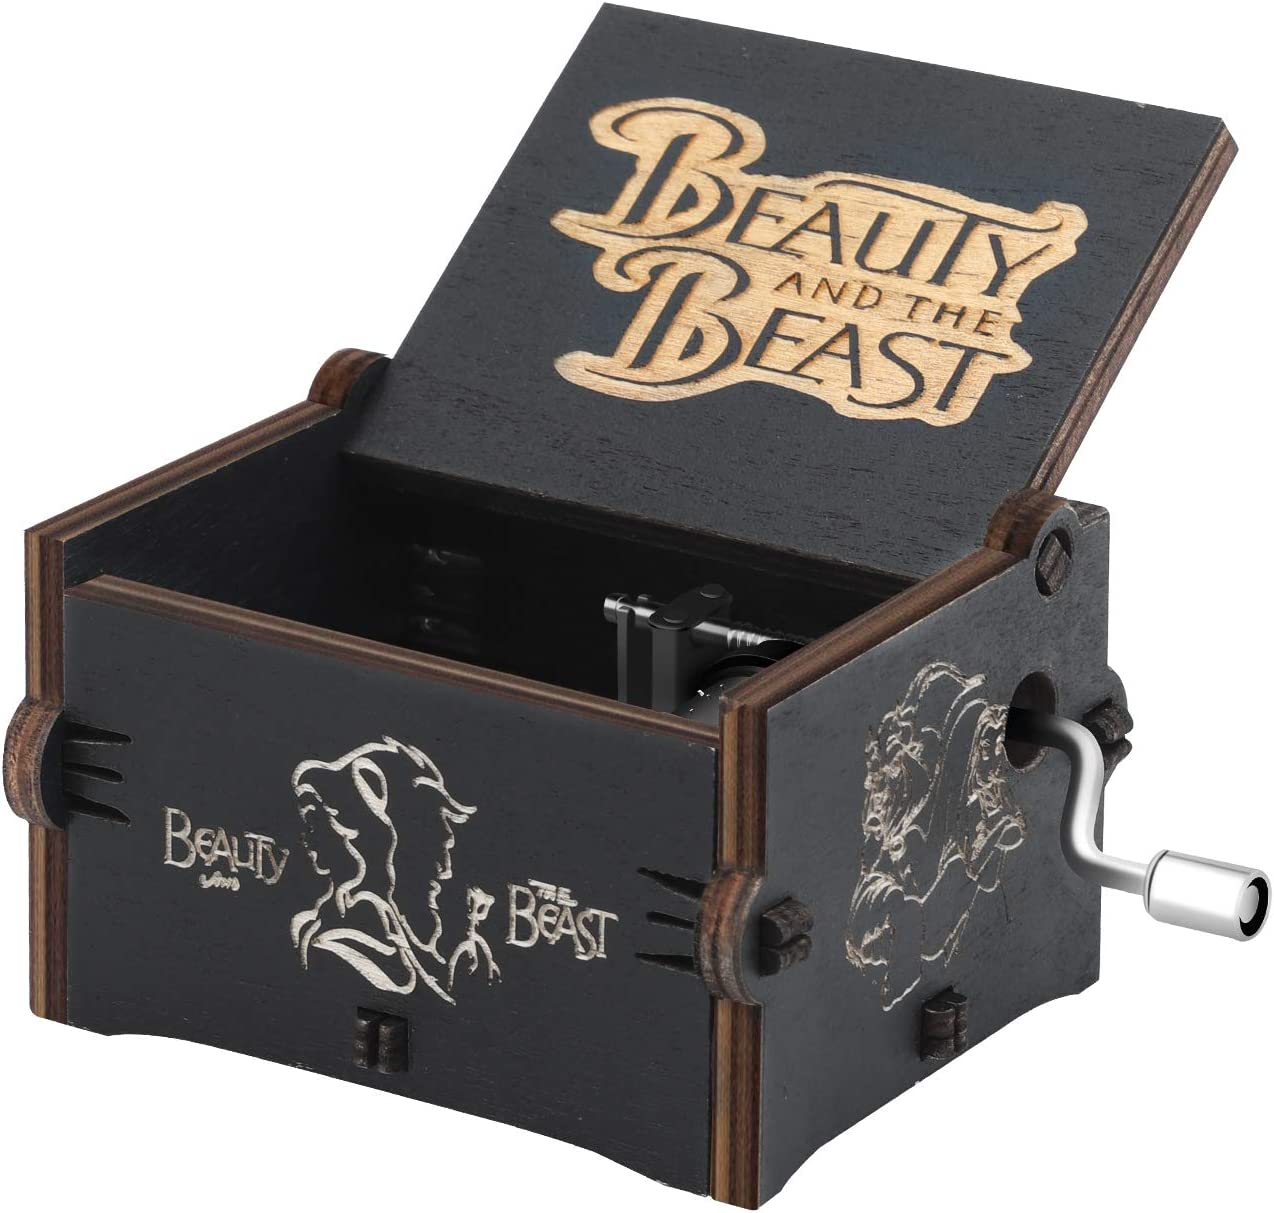 Girls Beauty and The Beast Boys Friends Merchandise Vintage Classic Wood Hand Crank Carved Best Gift for Kids mrwinder Beauty and The Beast Music Box